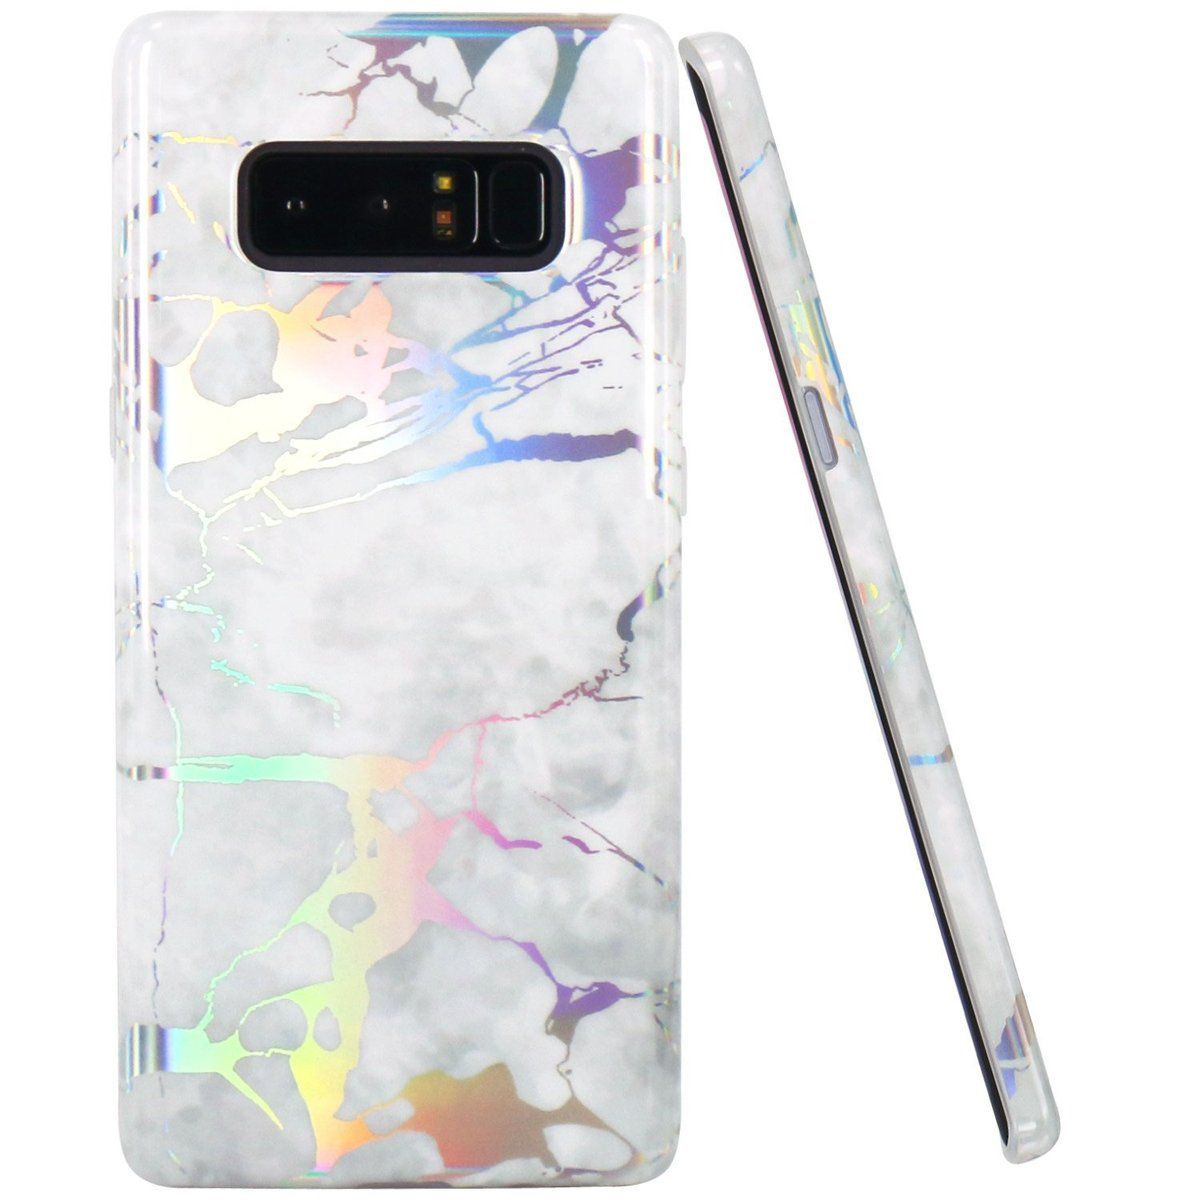 67273bab11 Shop the exclusive holographic's collection by CASES A LA MODE. Available  for Samsung Galaxy S9, Galaxy S9 Plus, and Galaxy Note 8. The holo phone  cases ...